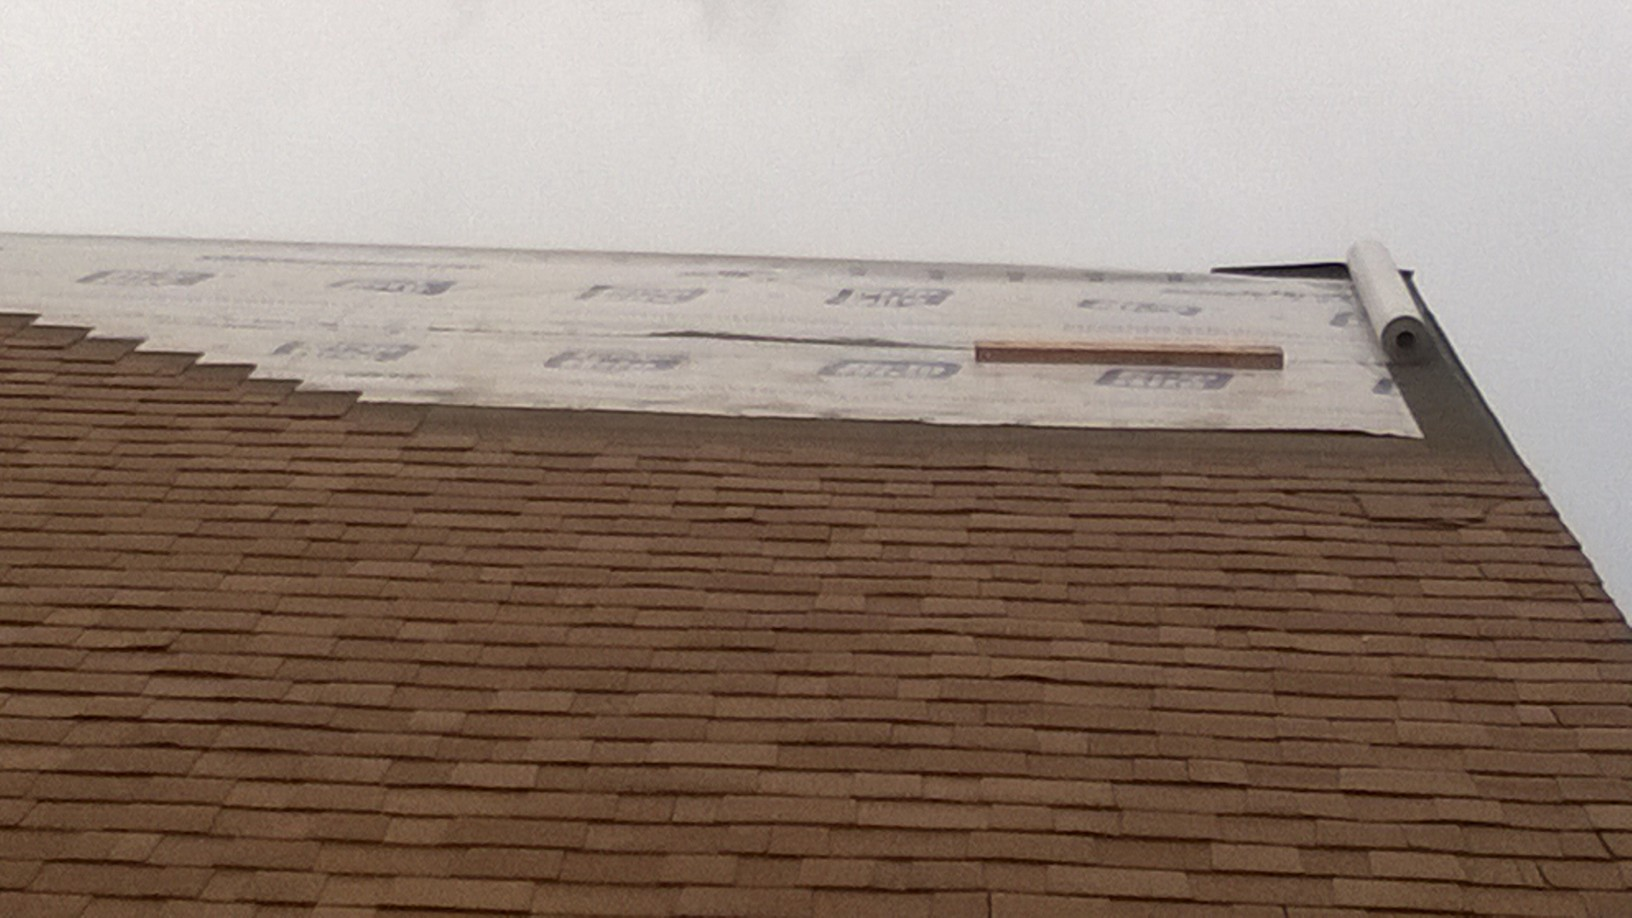 What Is My Sub Trying To Pull Grip Rite Under Shingles